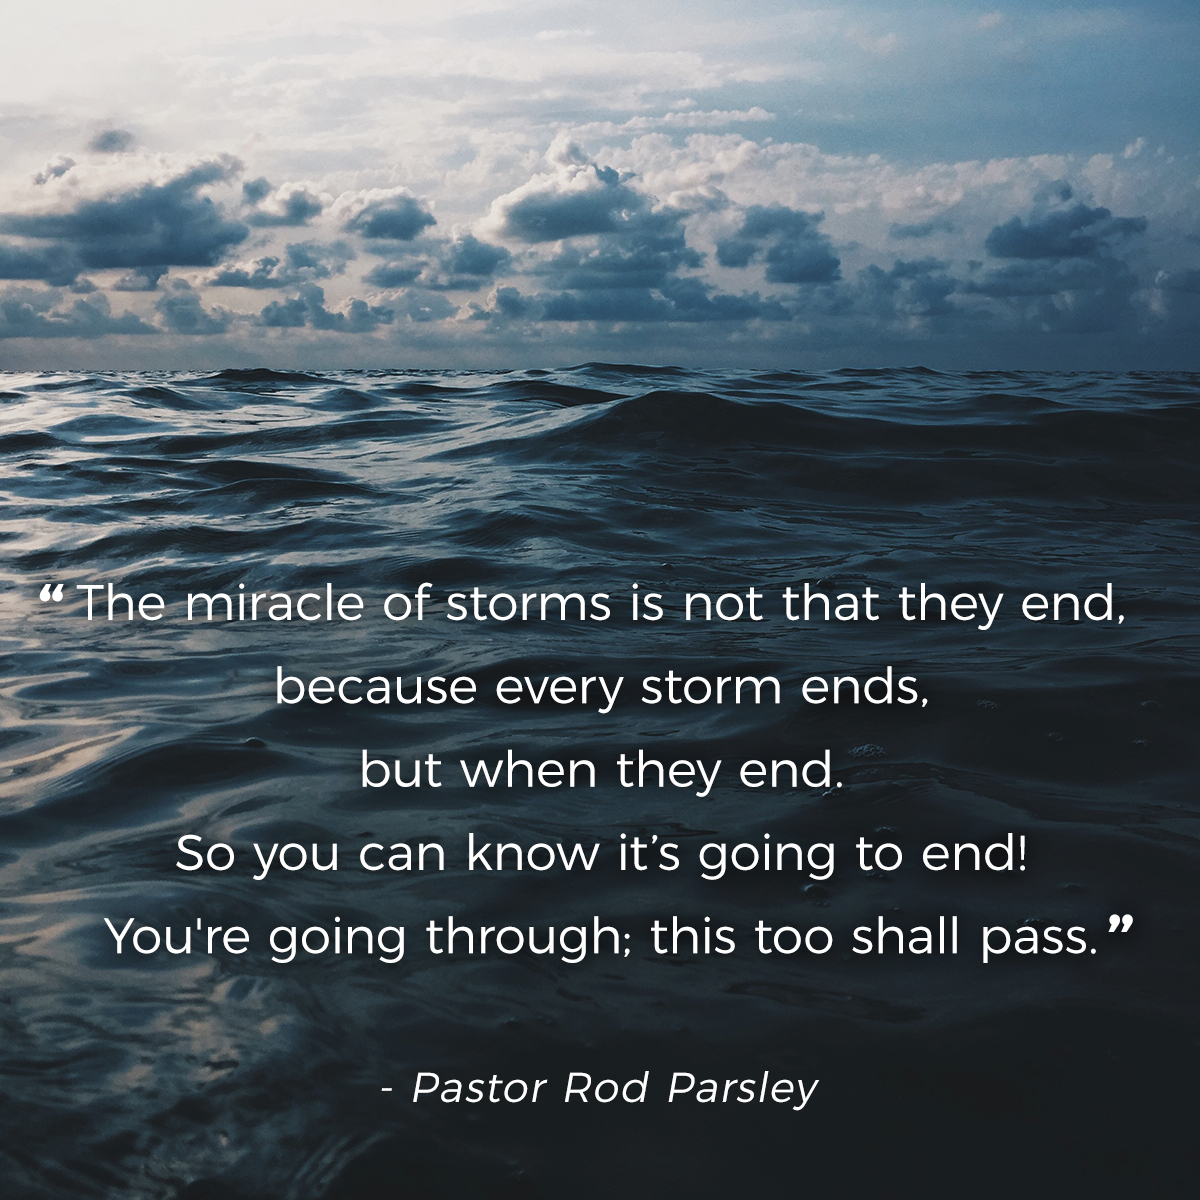 """The miracle of storms is not that they end, because every storm ends, but when they end. So you can know it's going to end! You're going through; this too shall pass."" – Pastor Rod Parsley"